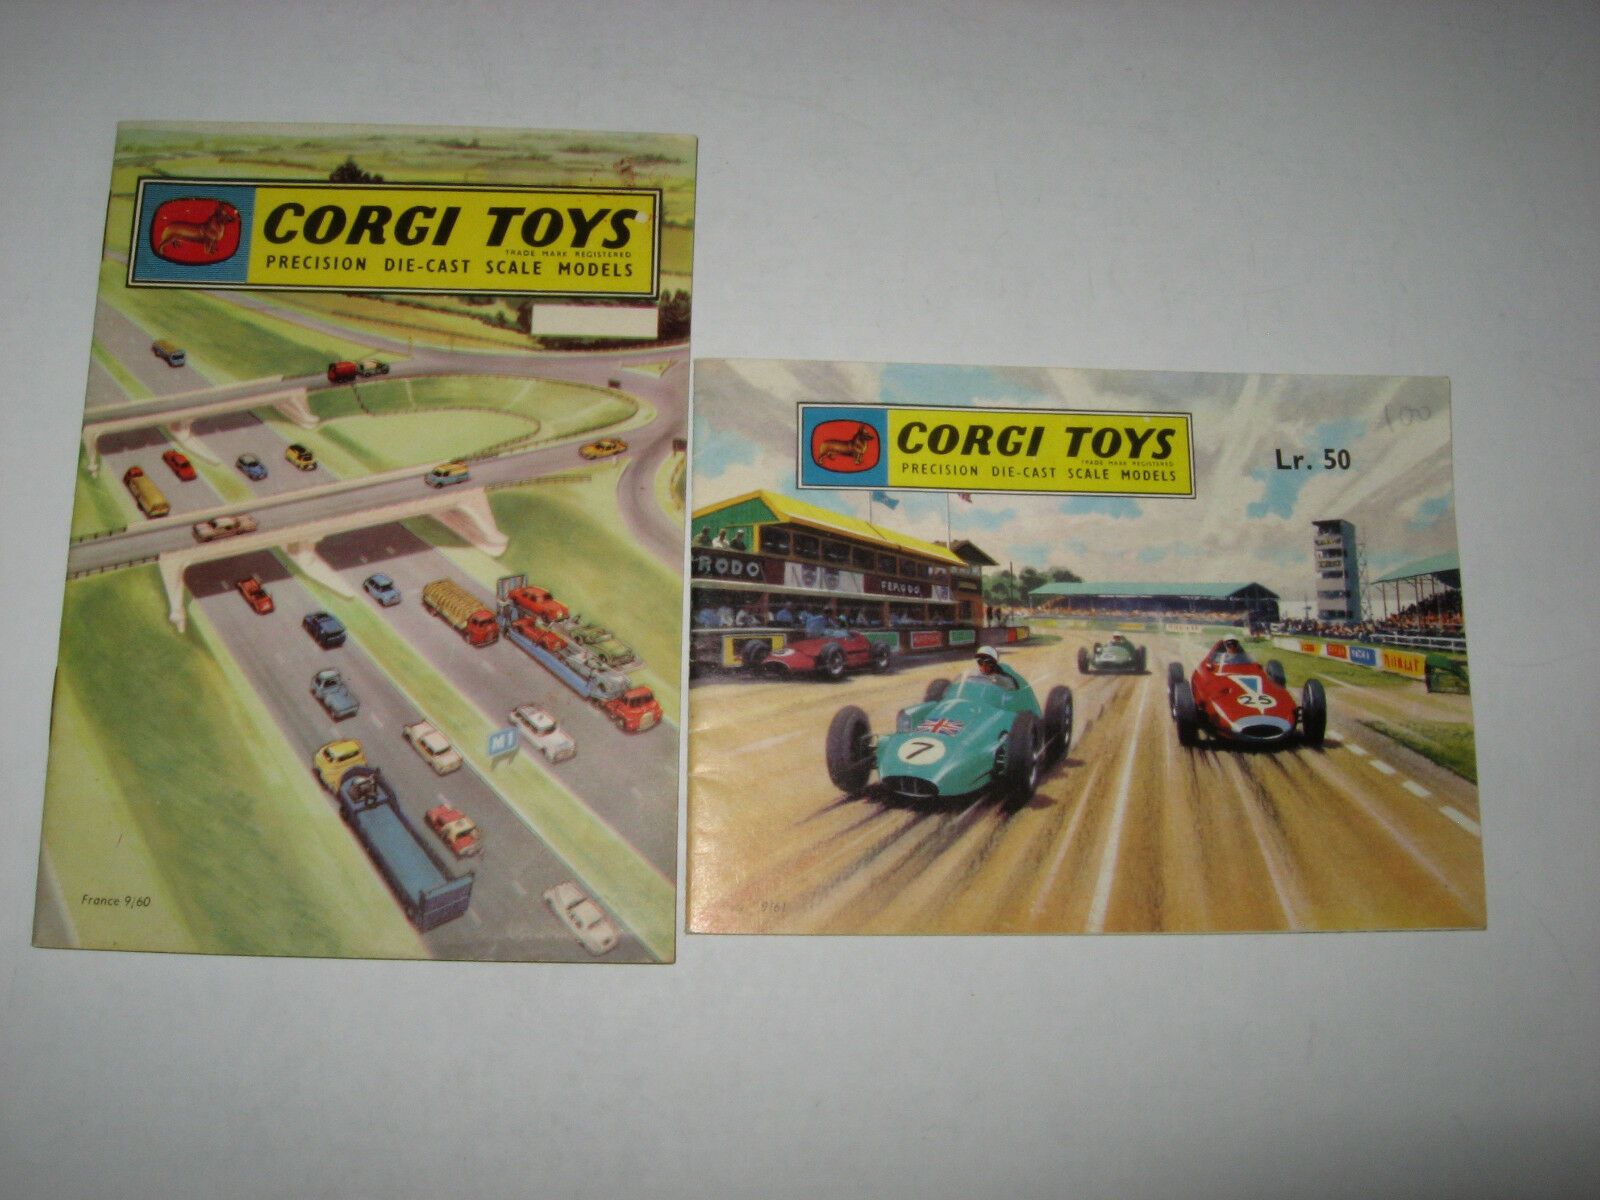 Corgi Toys Lot Of 2 Original Catalogs 1960 And 1961 Nice Condition